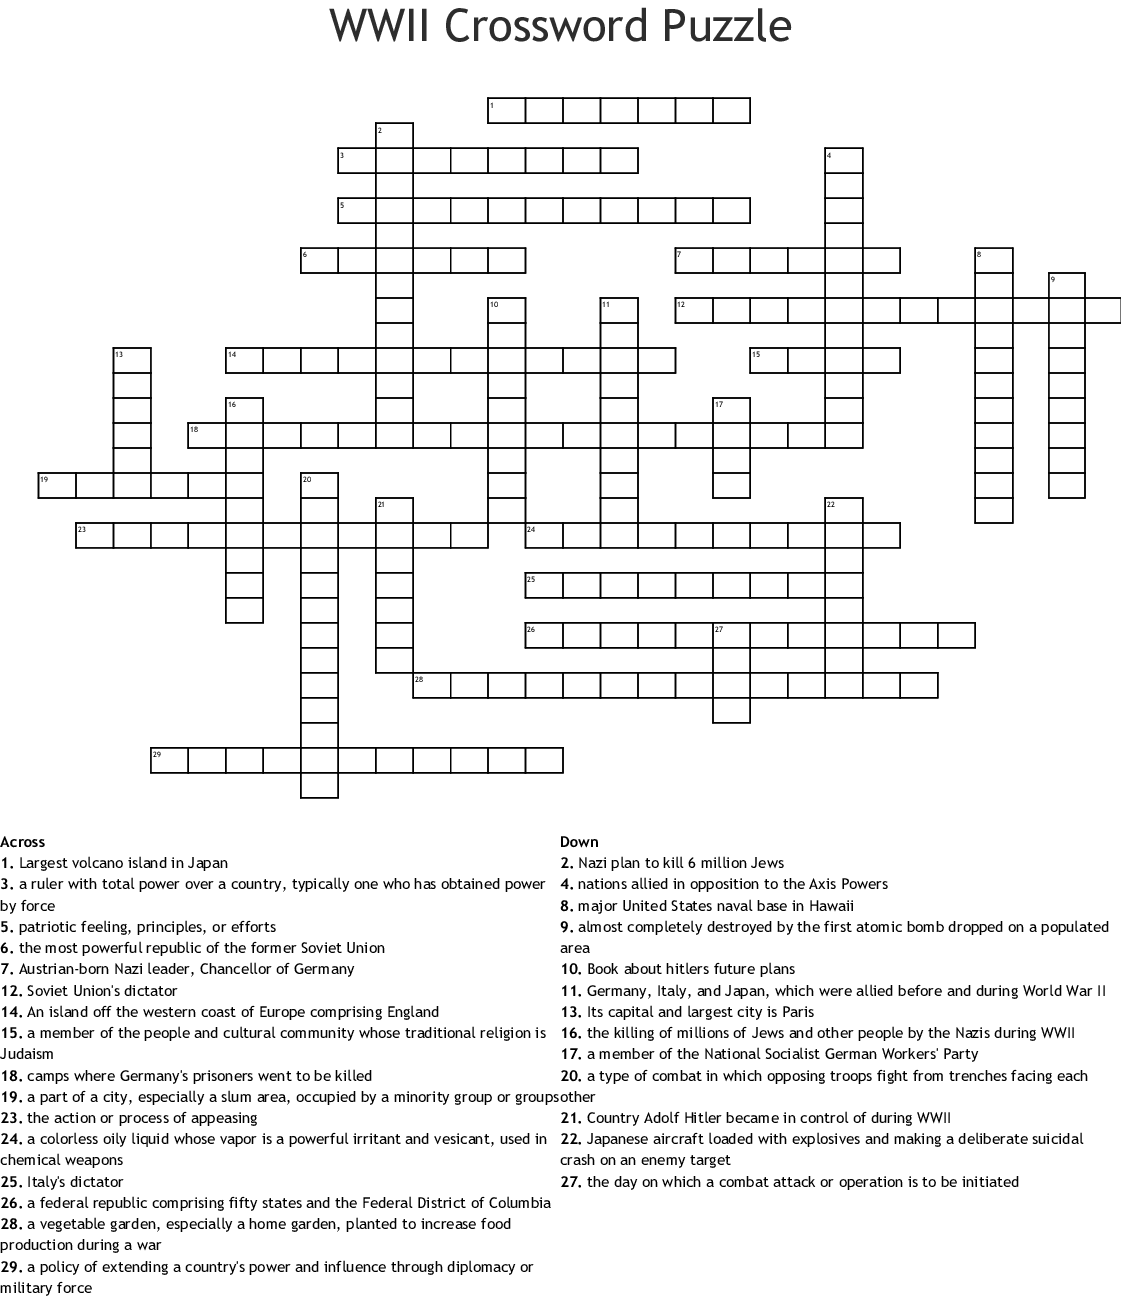 Ww2 Crossword Puzzle